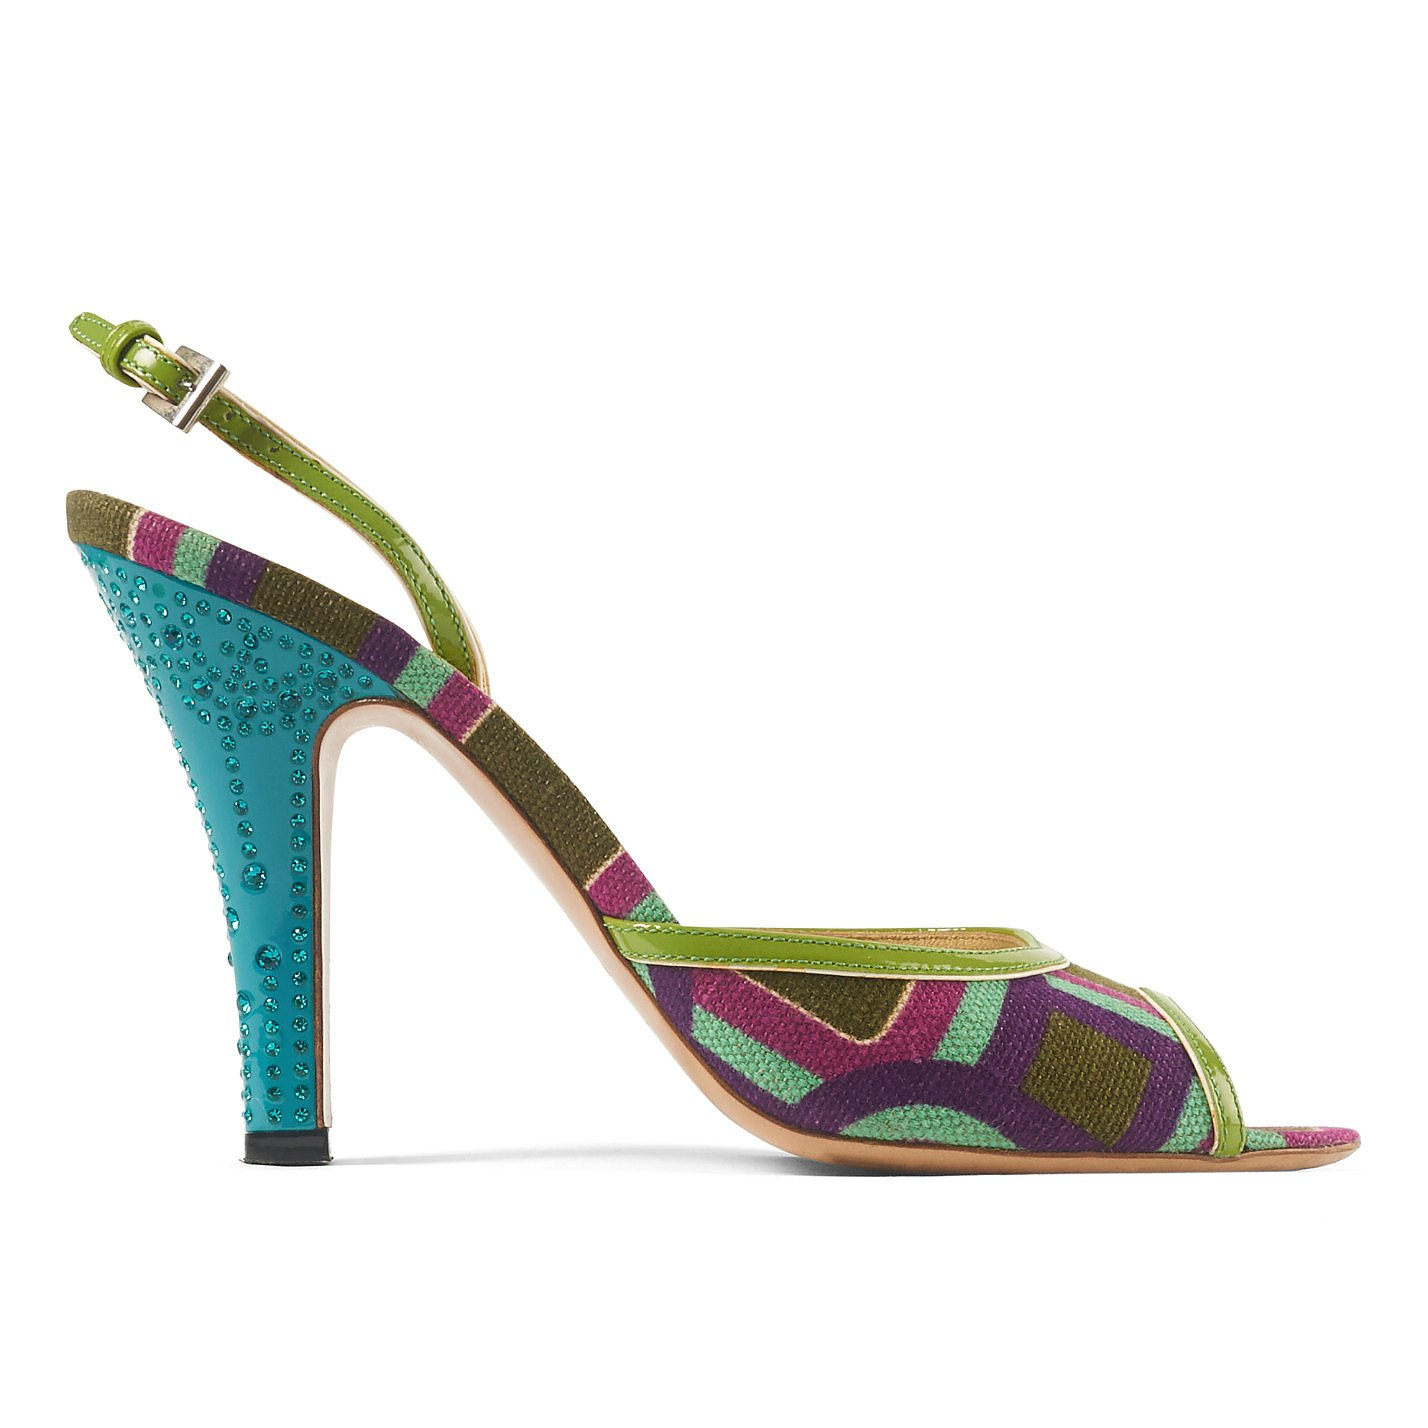 PRADA Patterned Peep Toe Heels